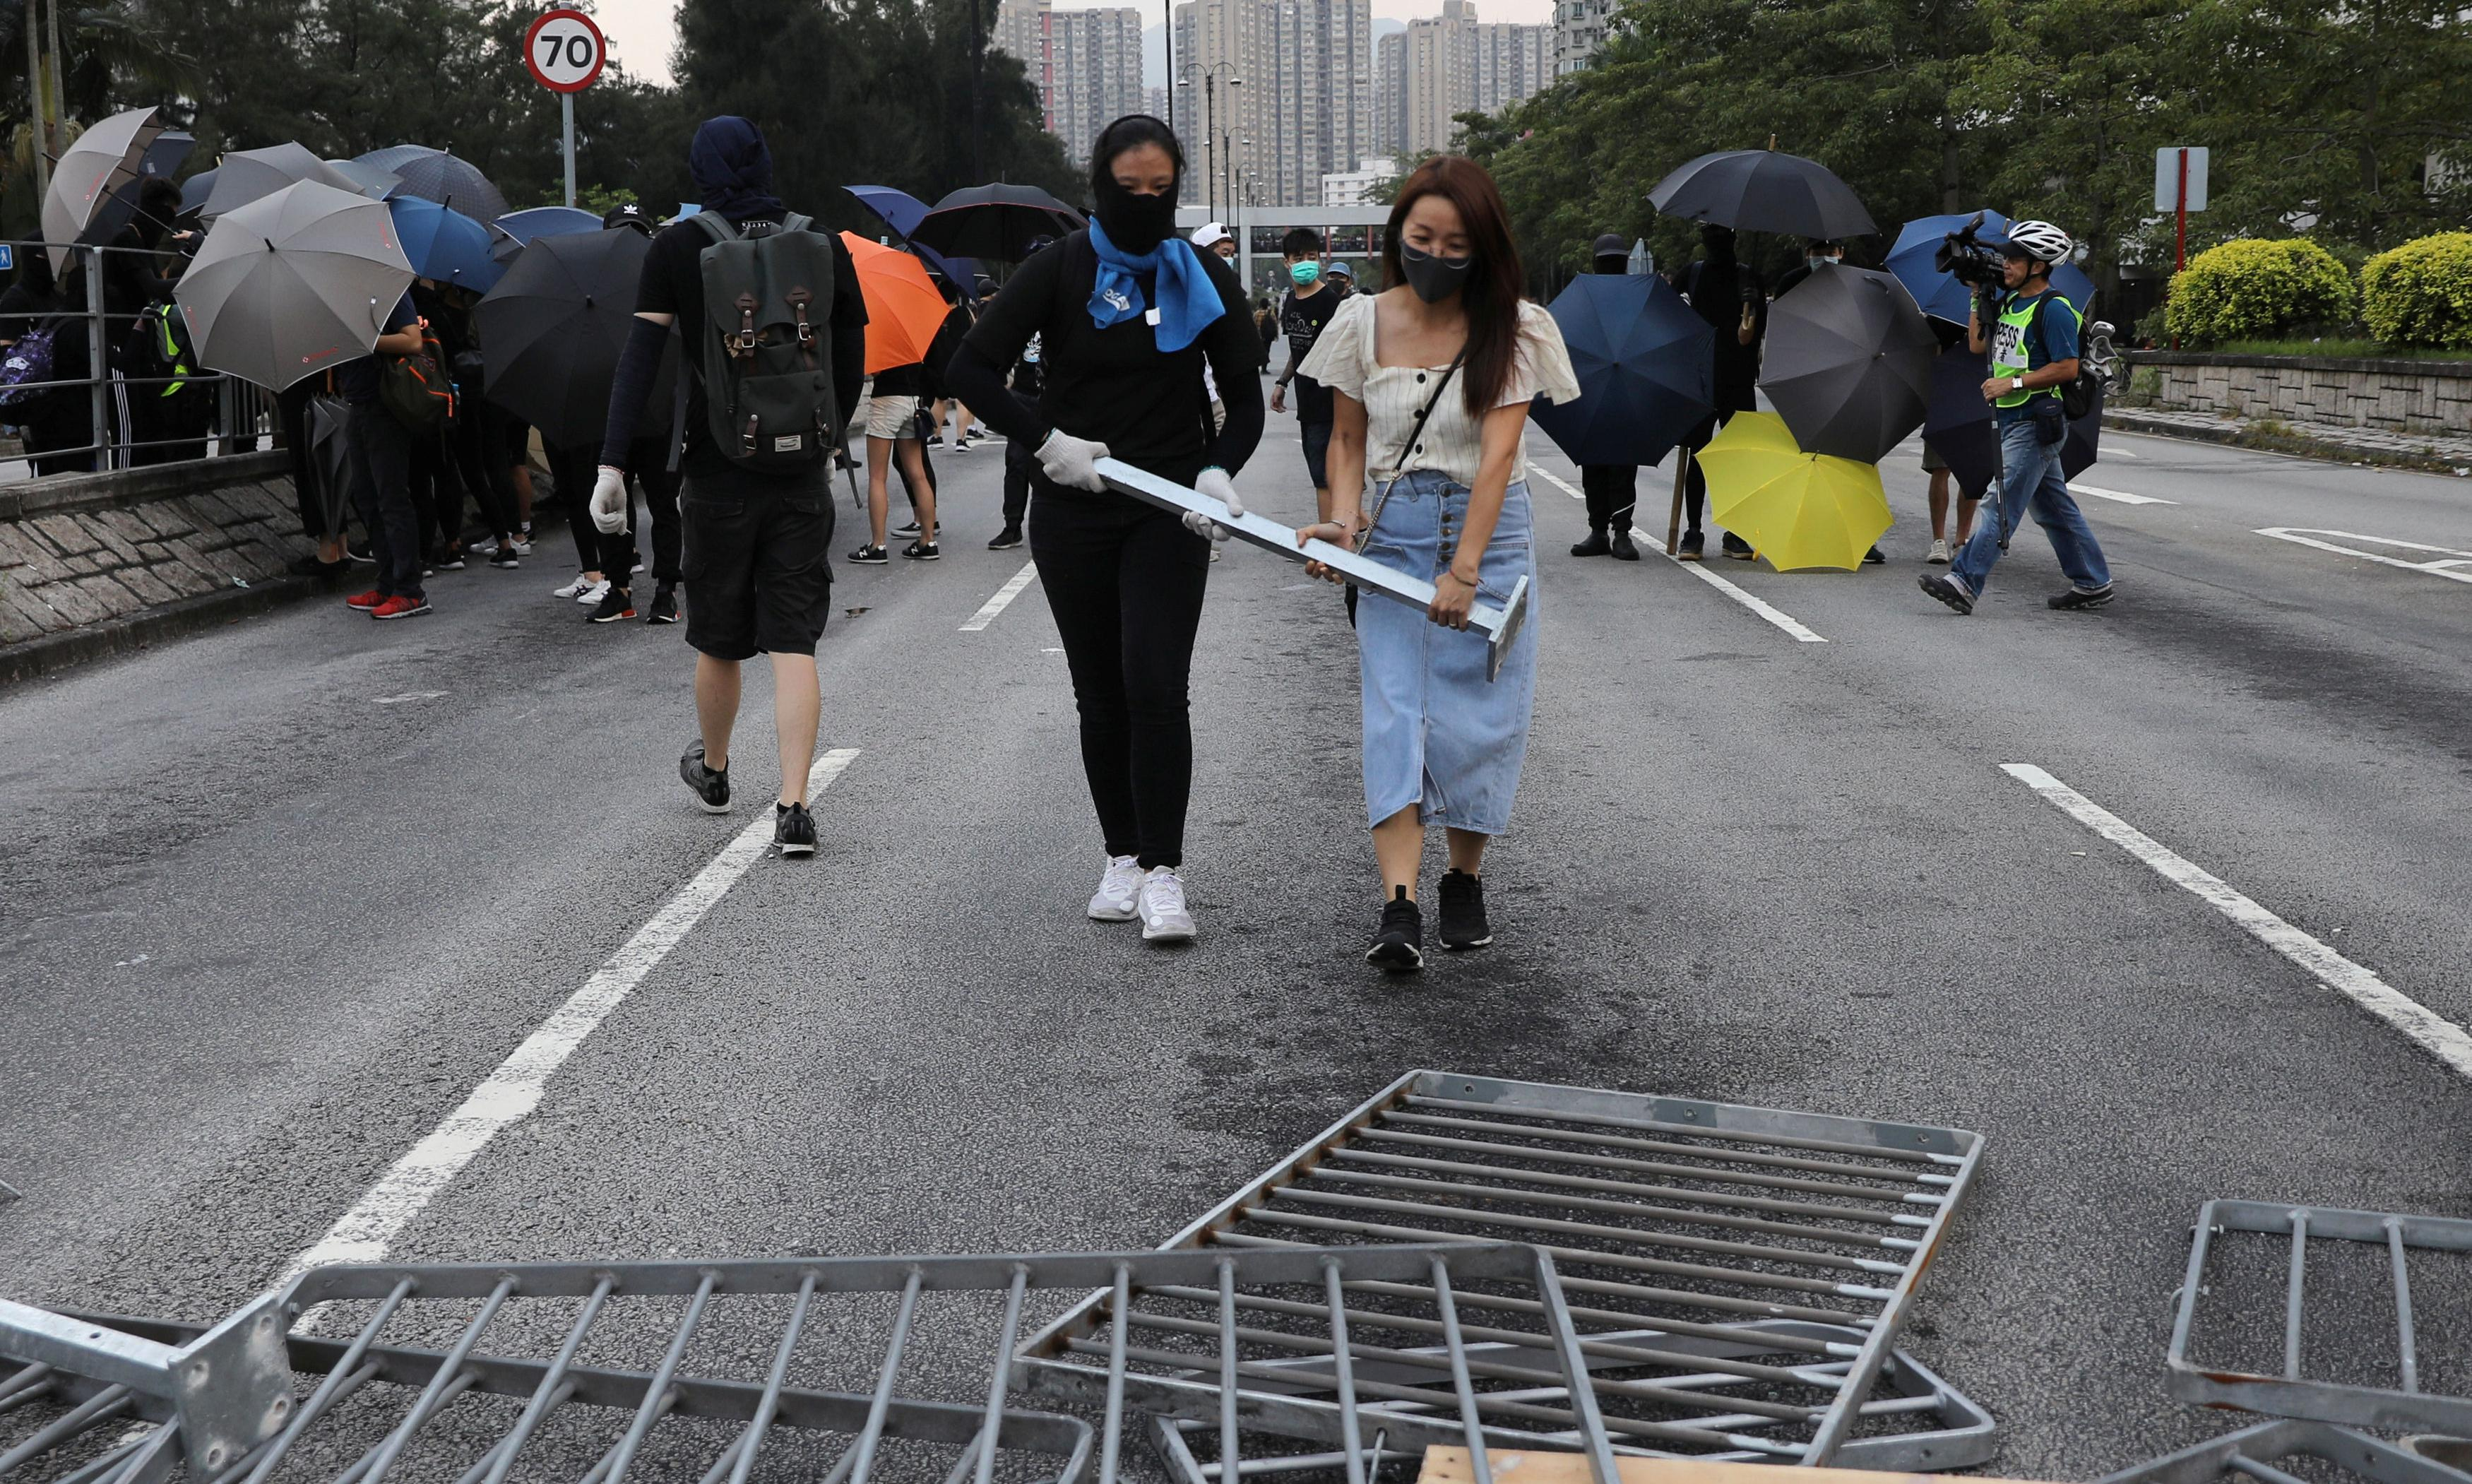 Hong Kong protesters use new flashmob strategy to avoid arrest